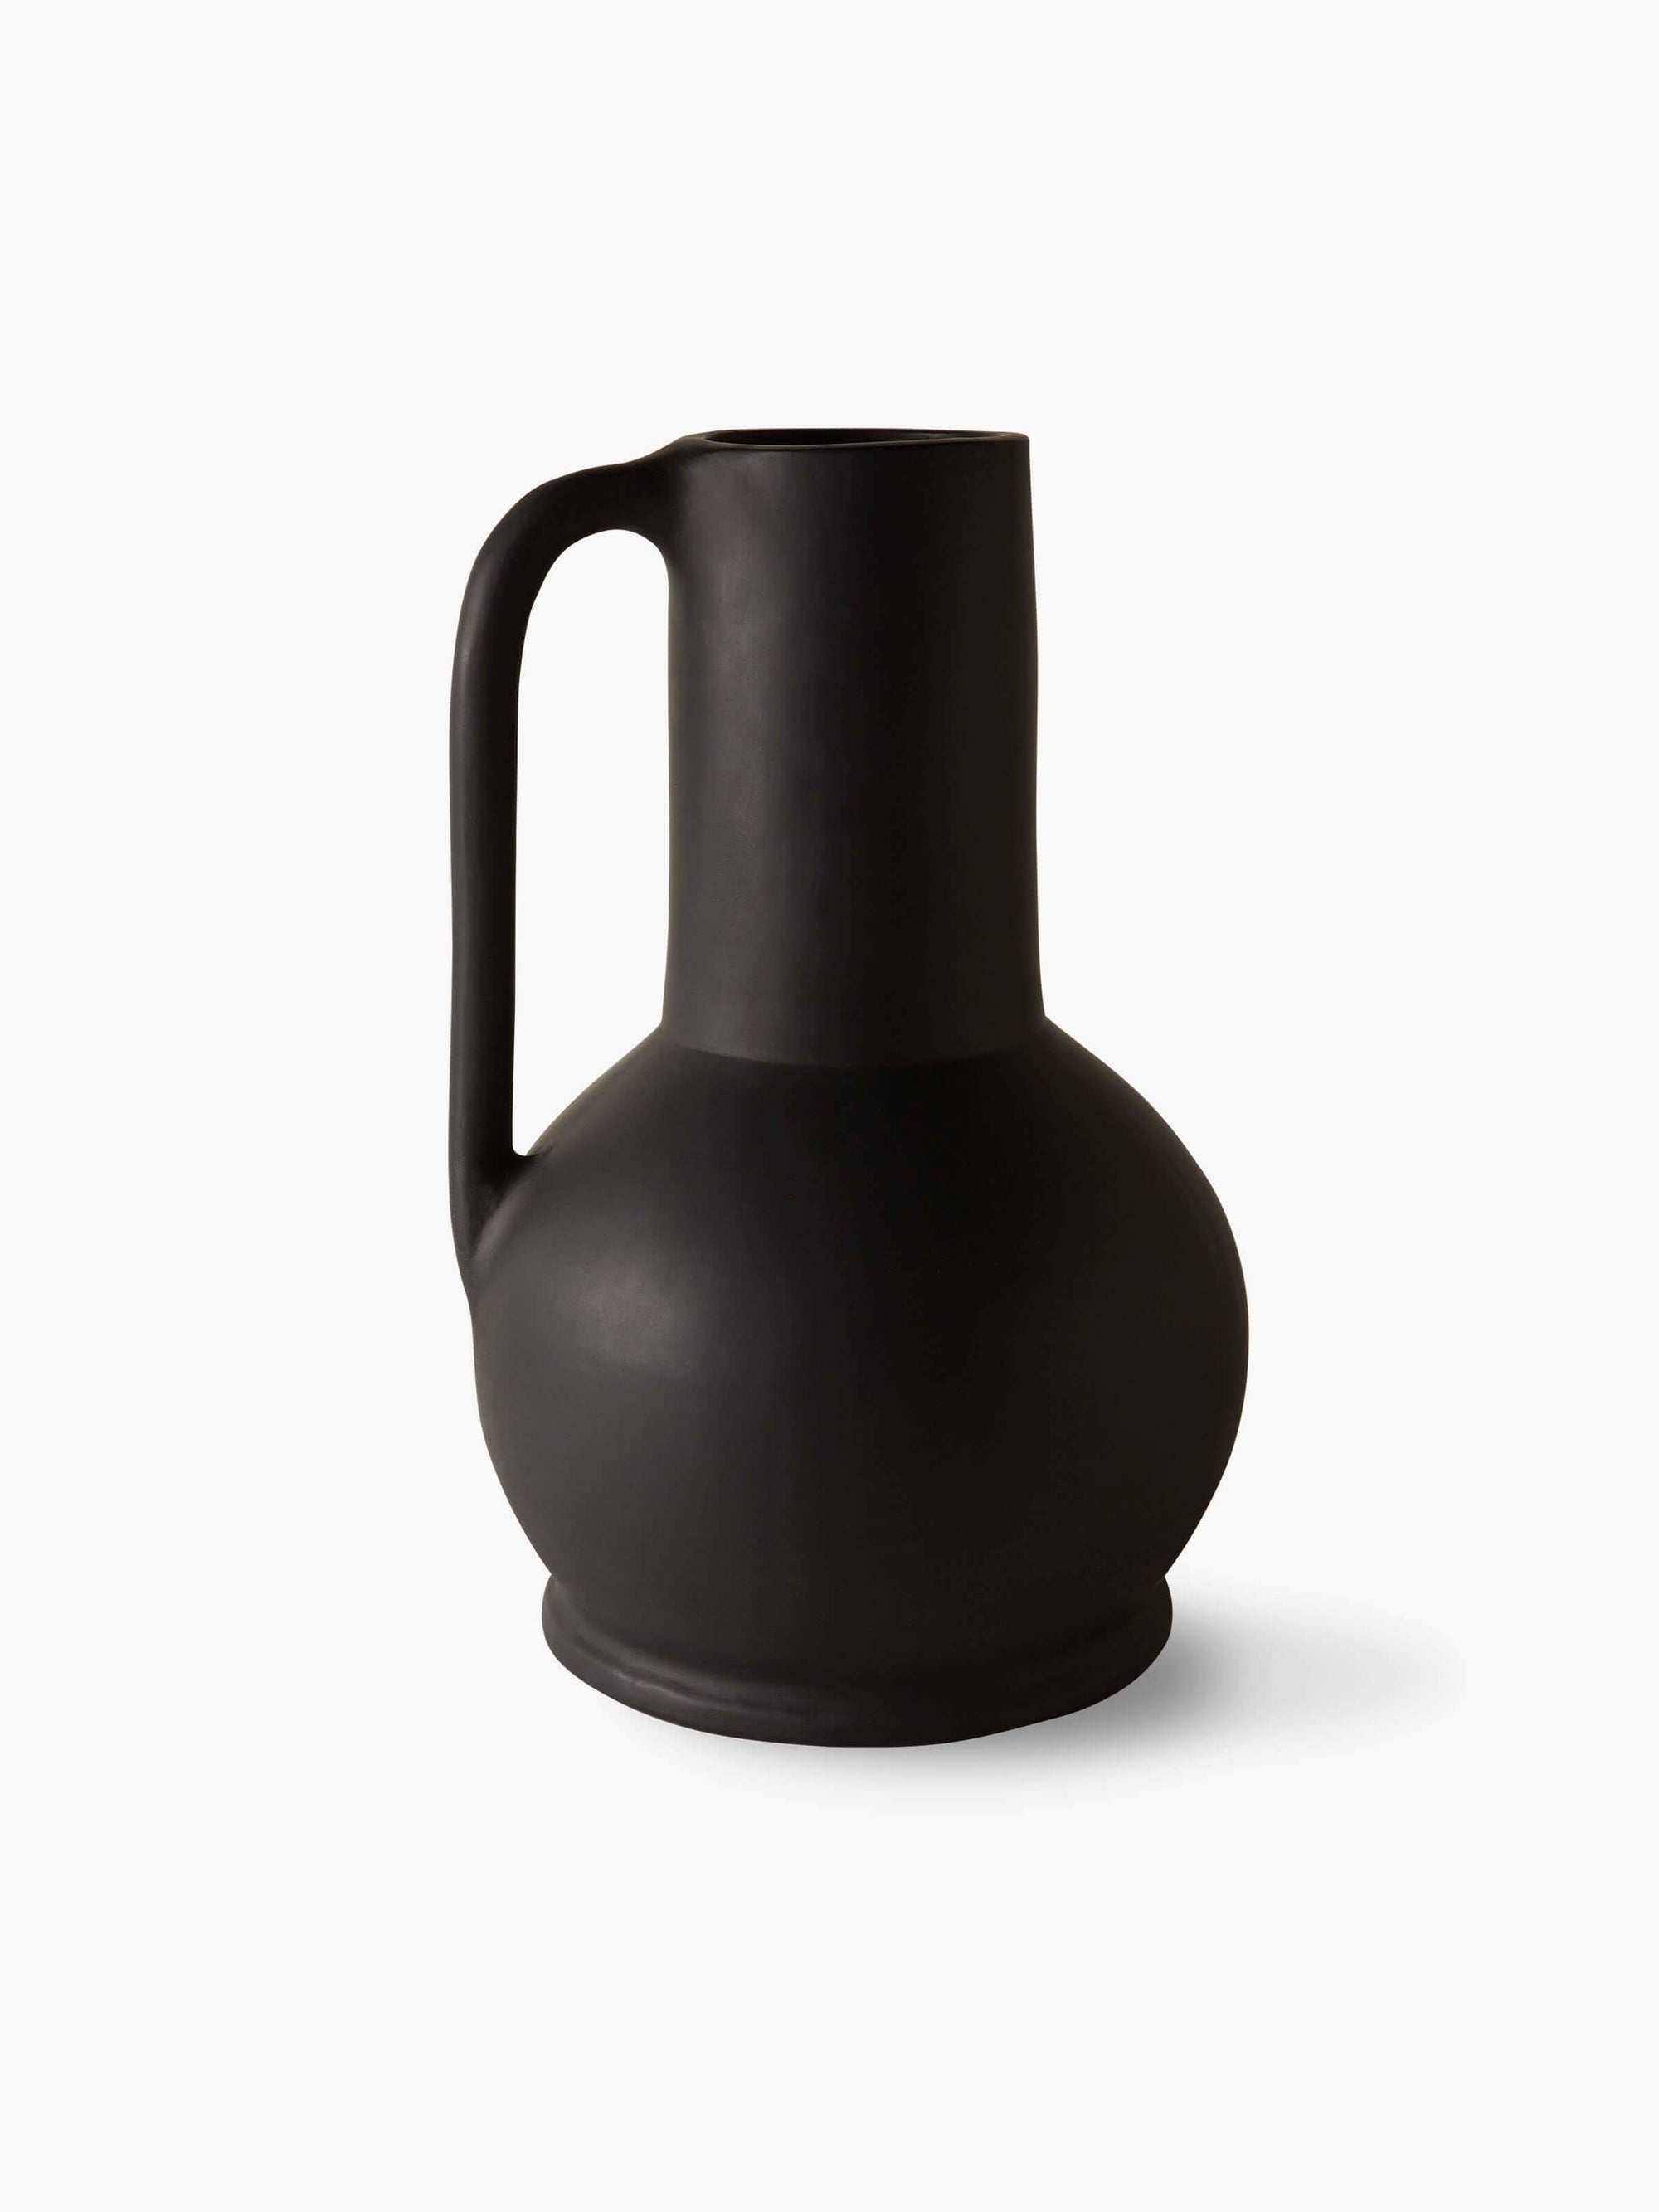 Artemis Vessel - Black Homewares 2020